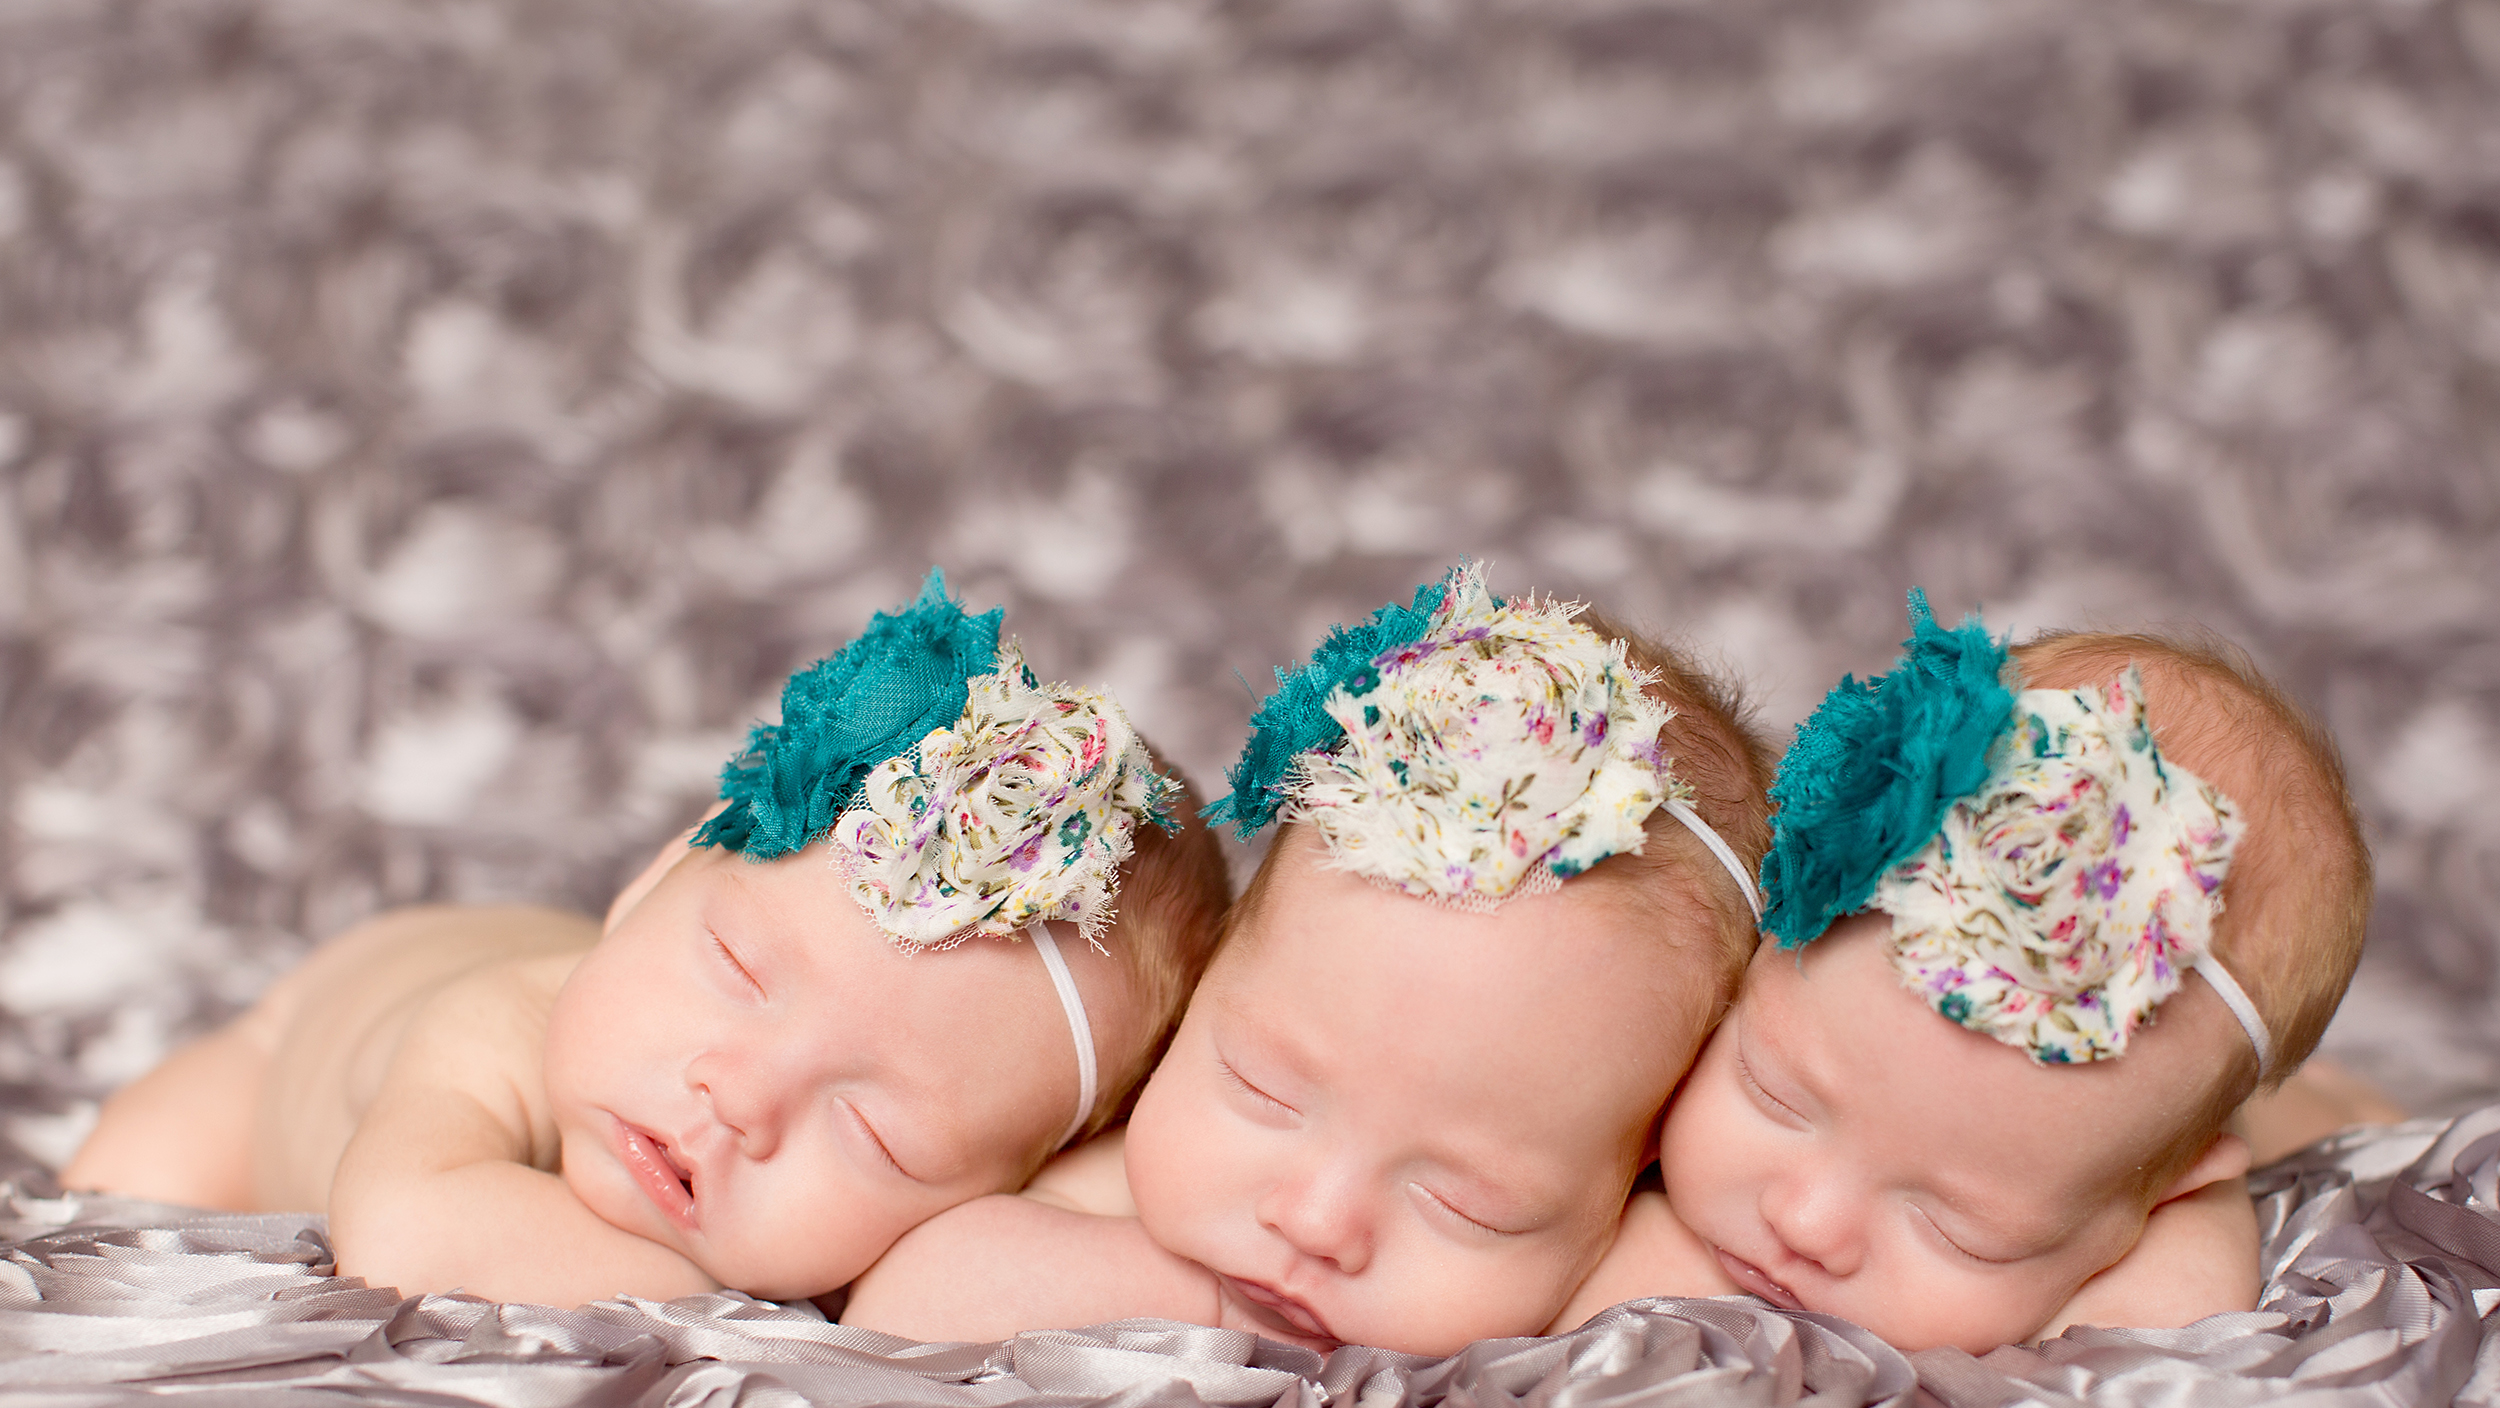 identical triplet babies - photo #21